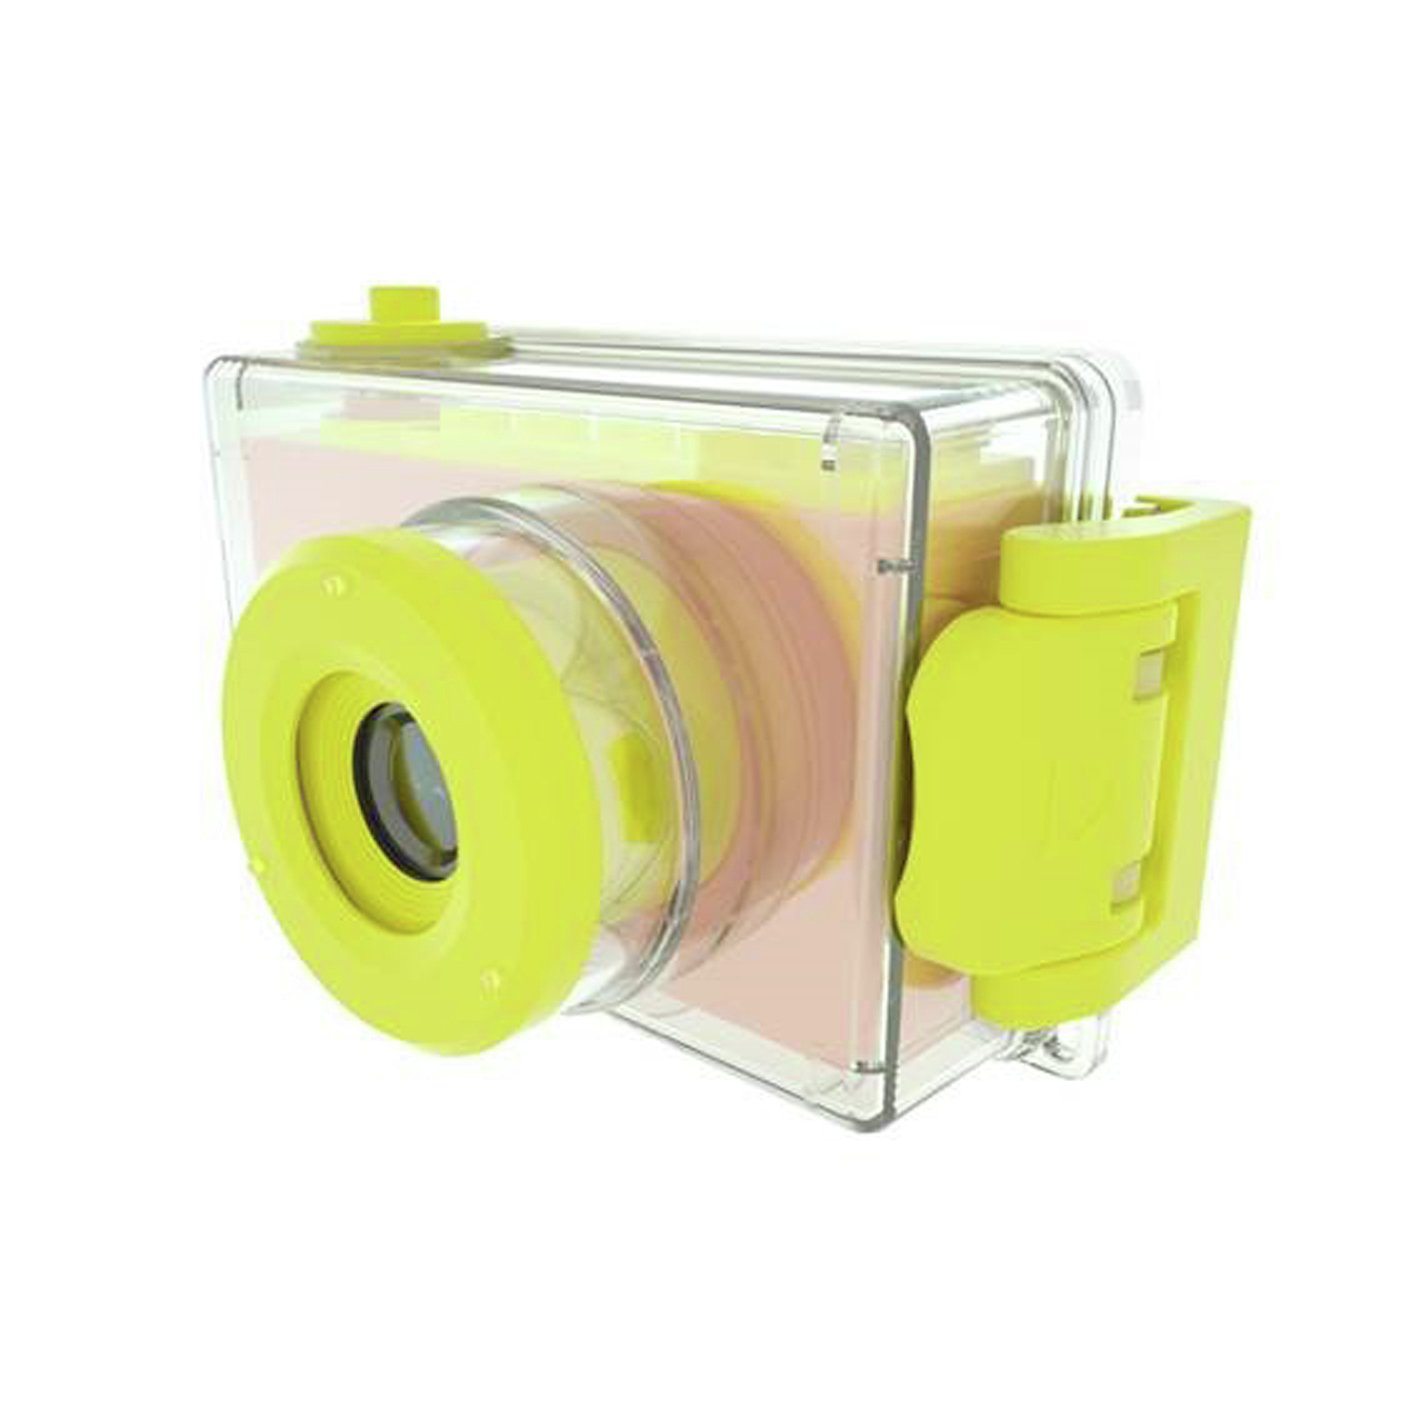 myFirst Camera with Waterproof Case - Pink